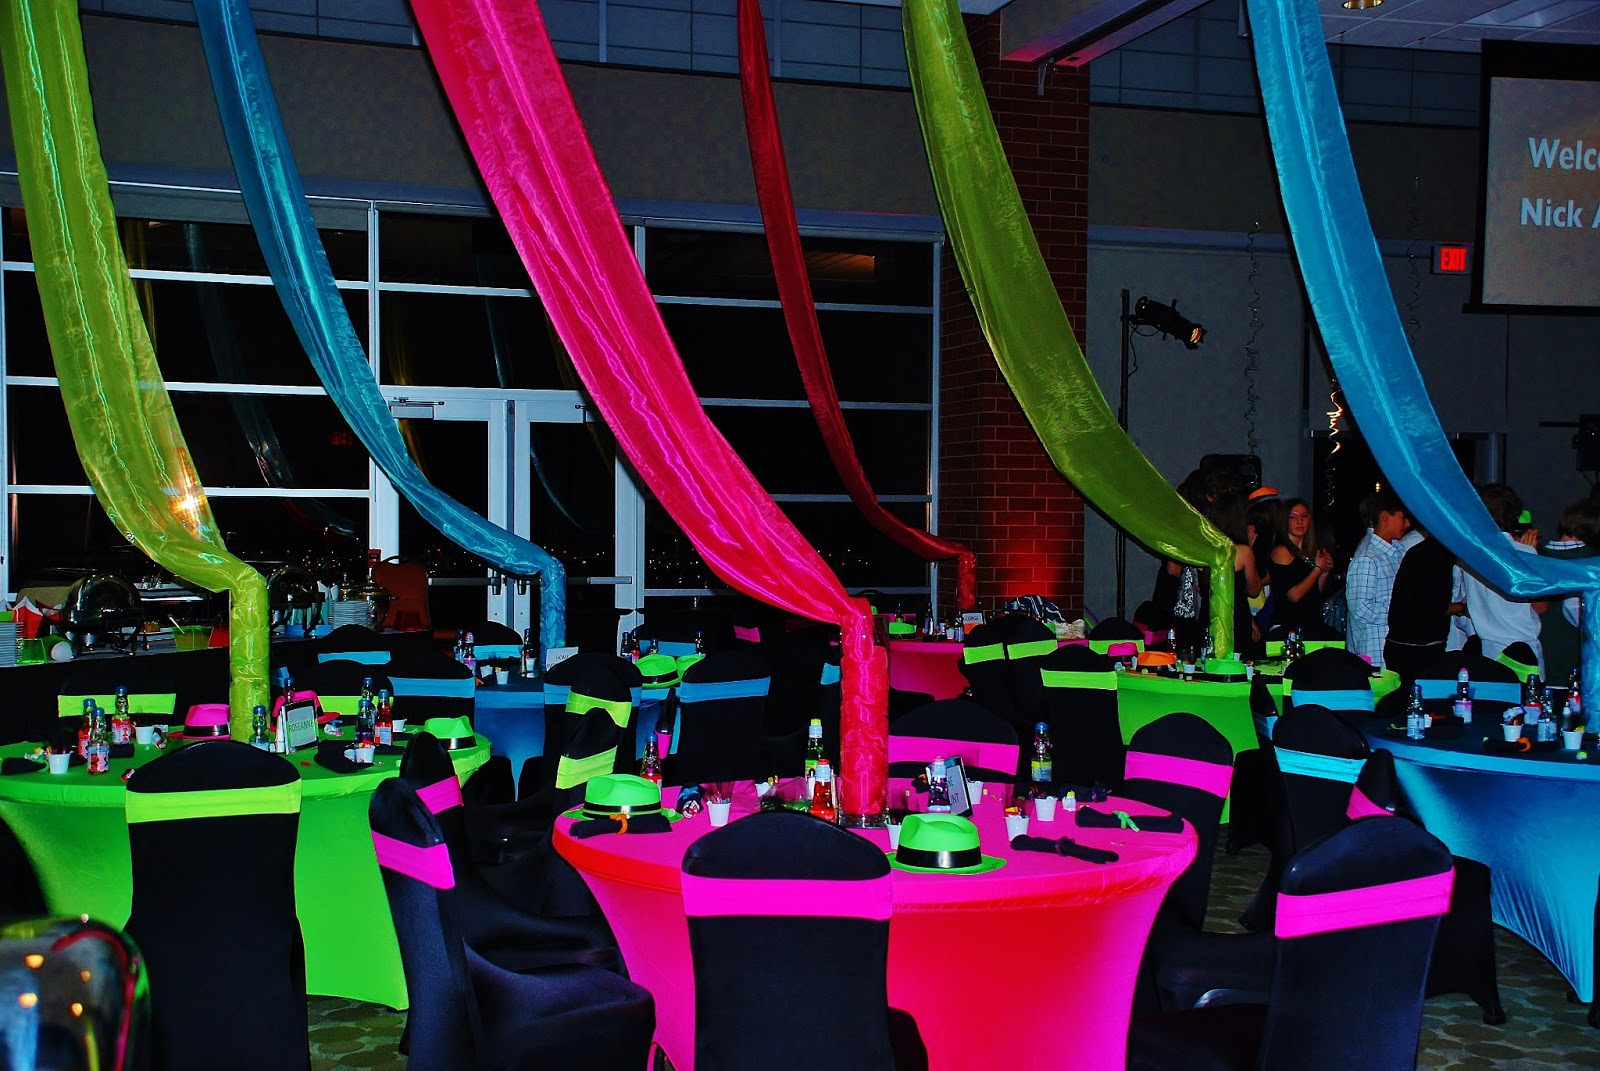 Neon Party Theme Images & Pictures - Becuo